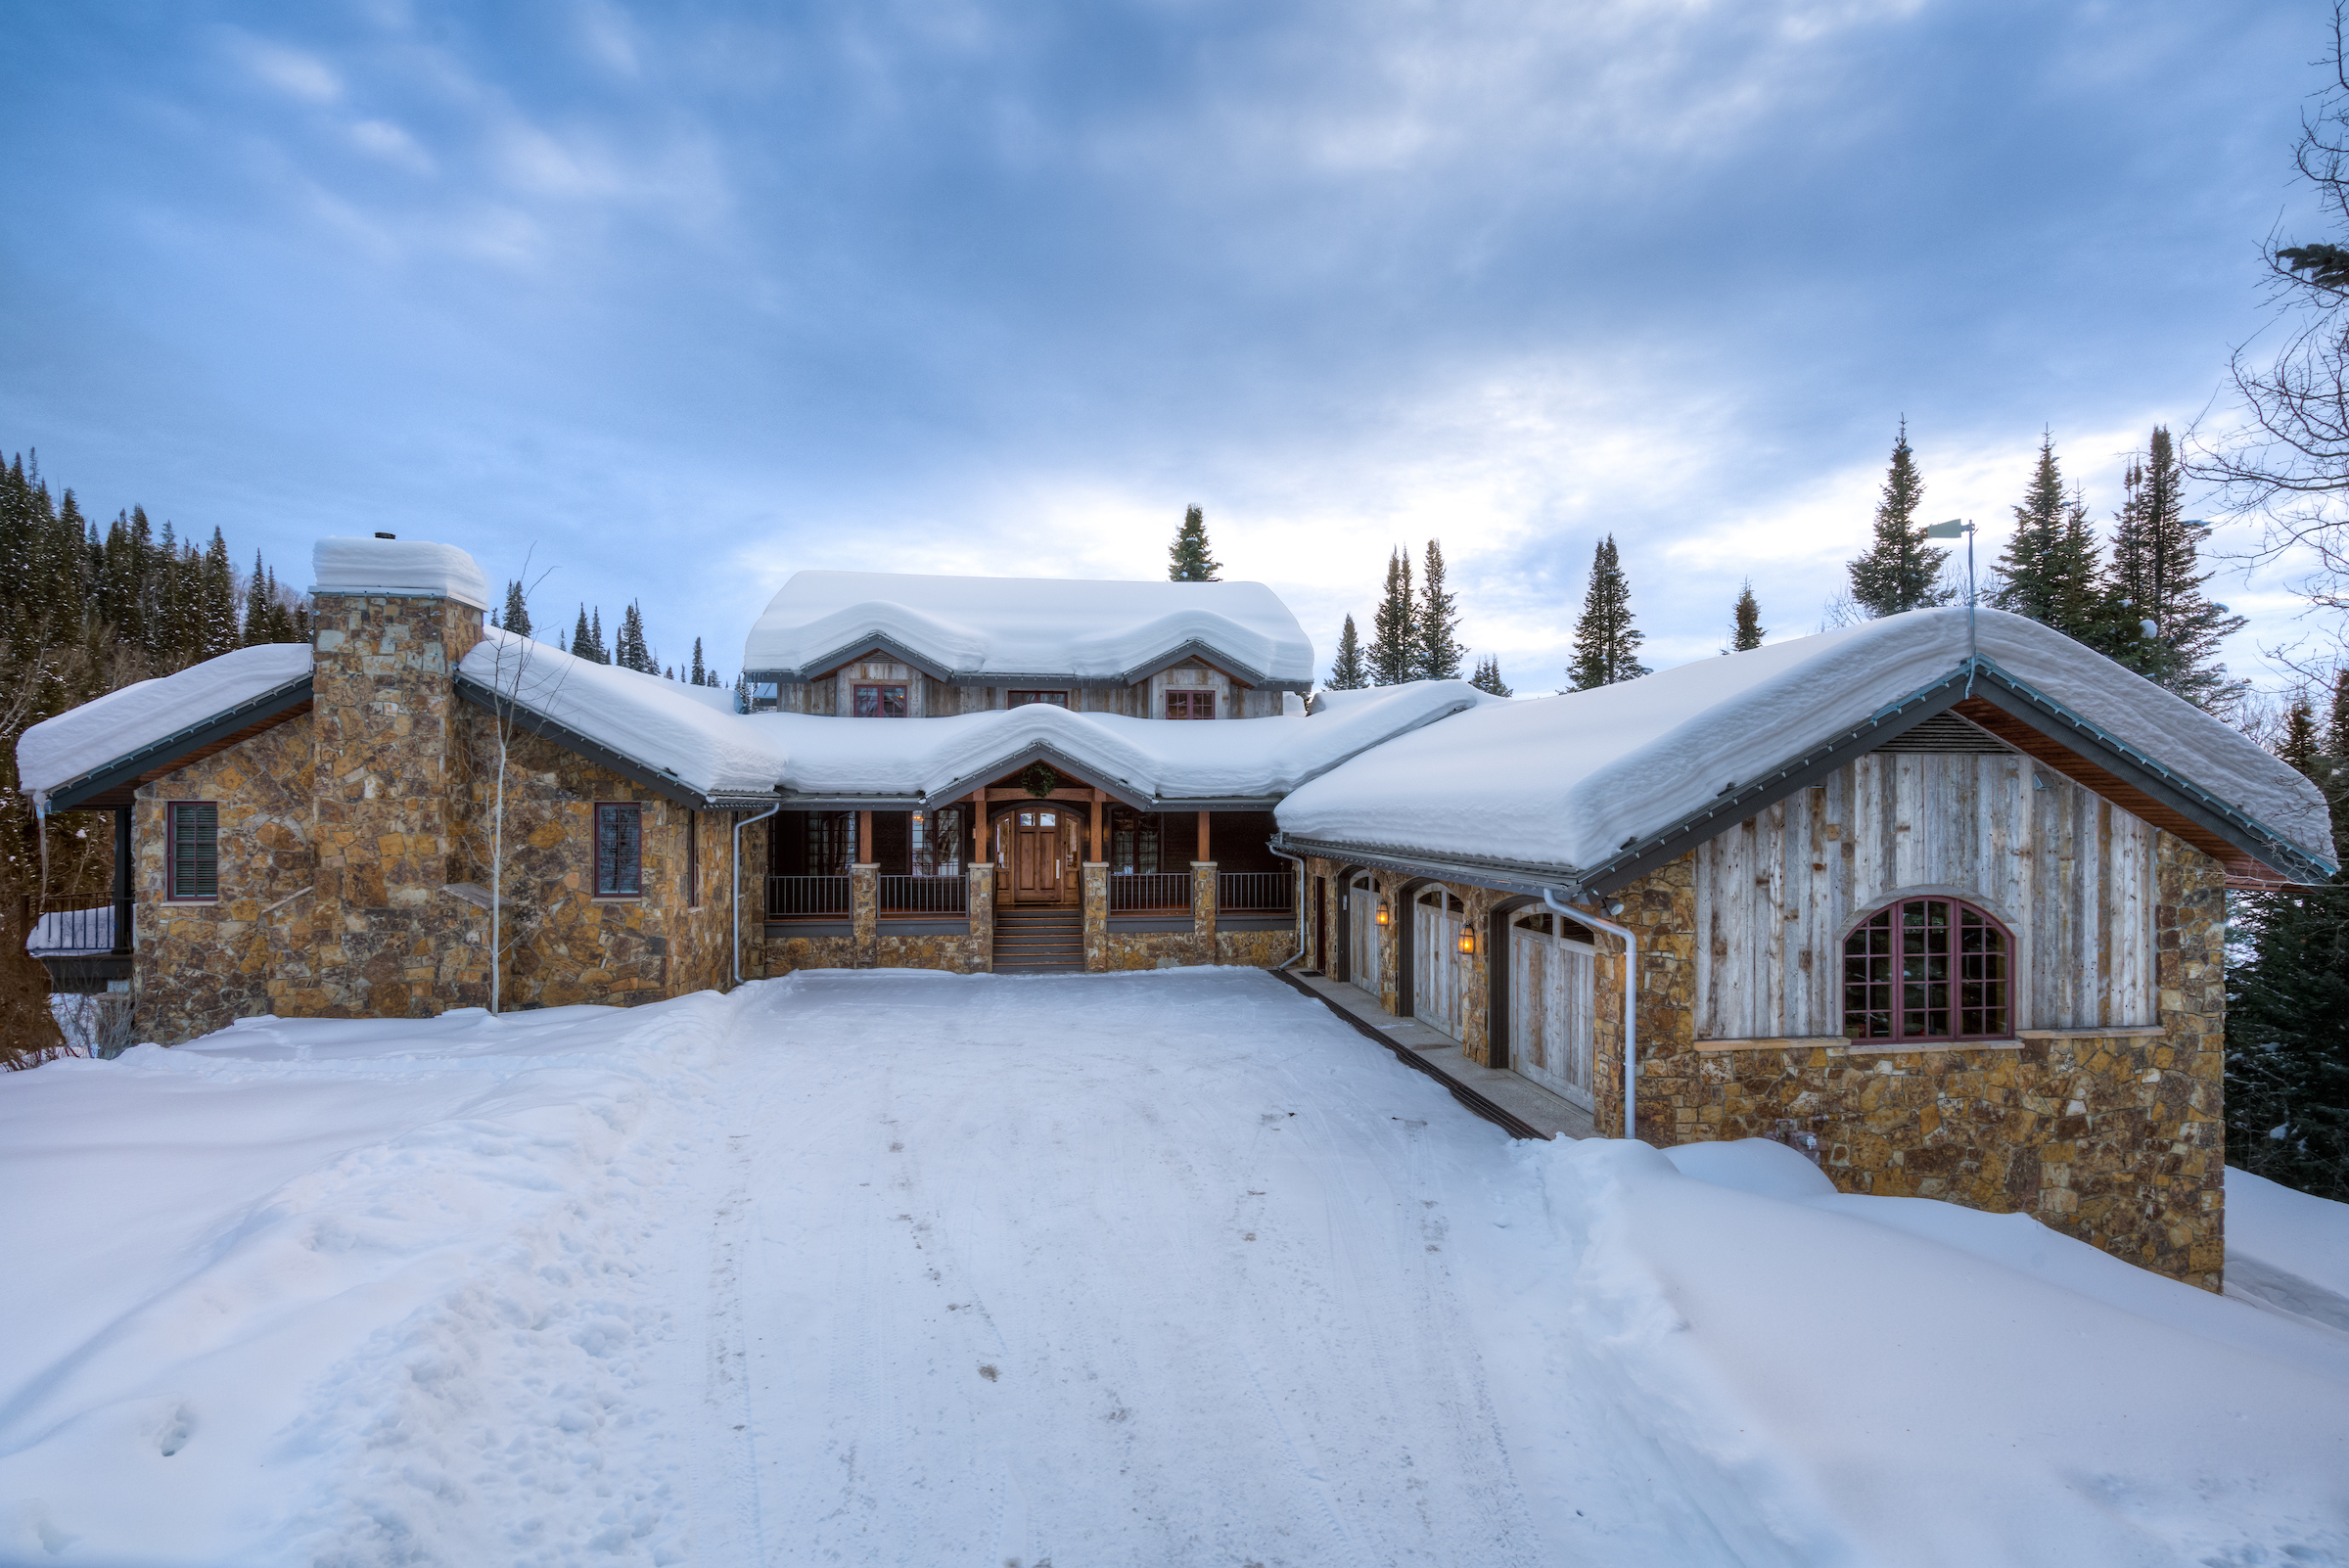 Single Family Home for Sale at Strawberry Park Jewel 32375 County Road 38 Steamboat Springs, Colorado, 80487 United States